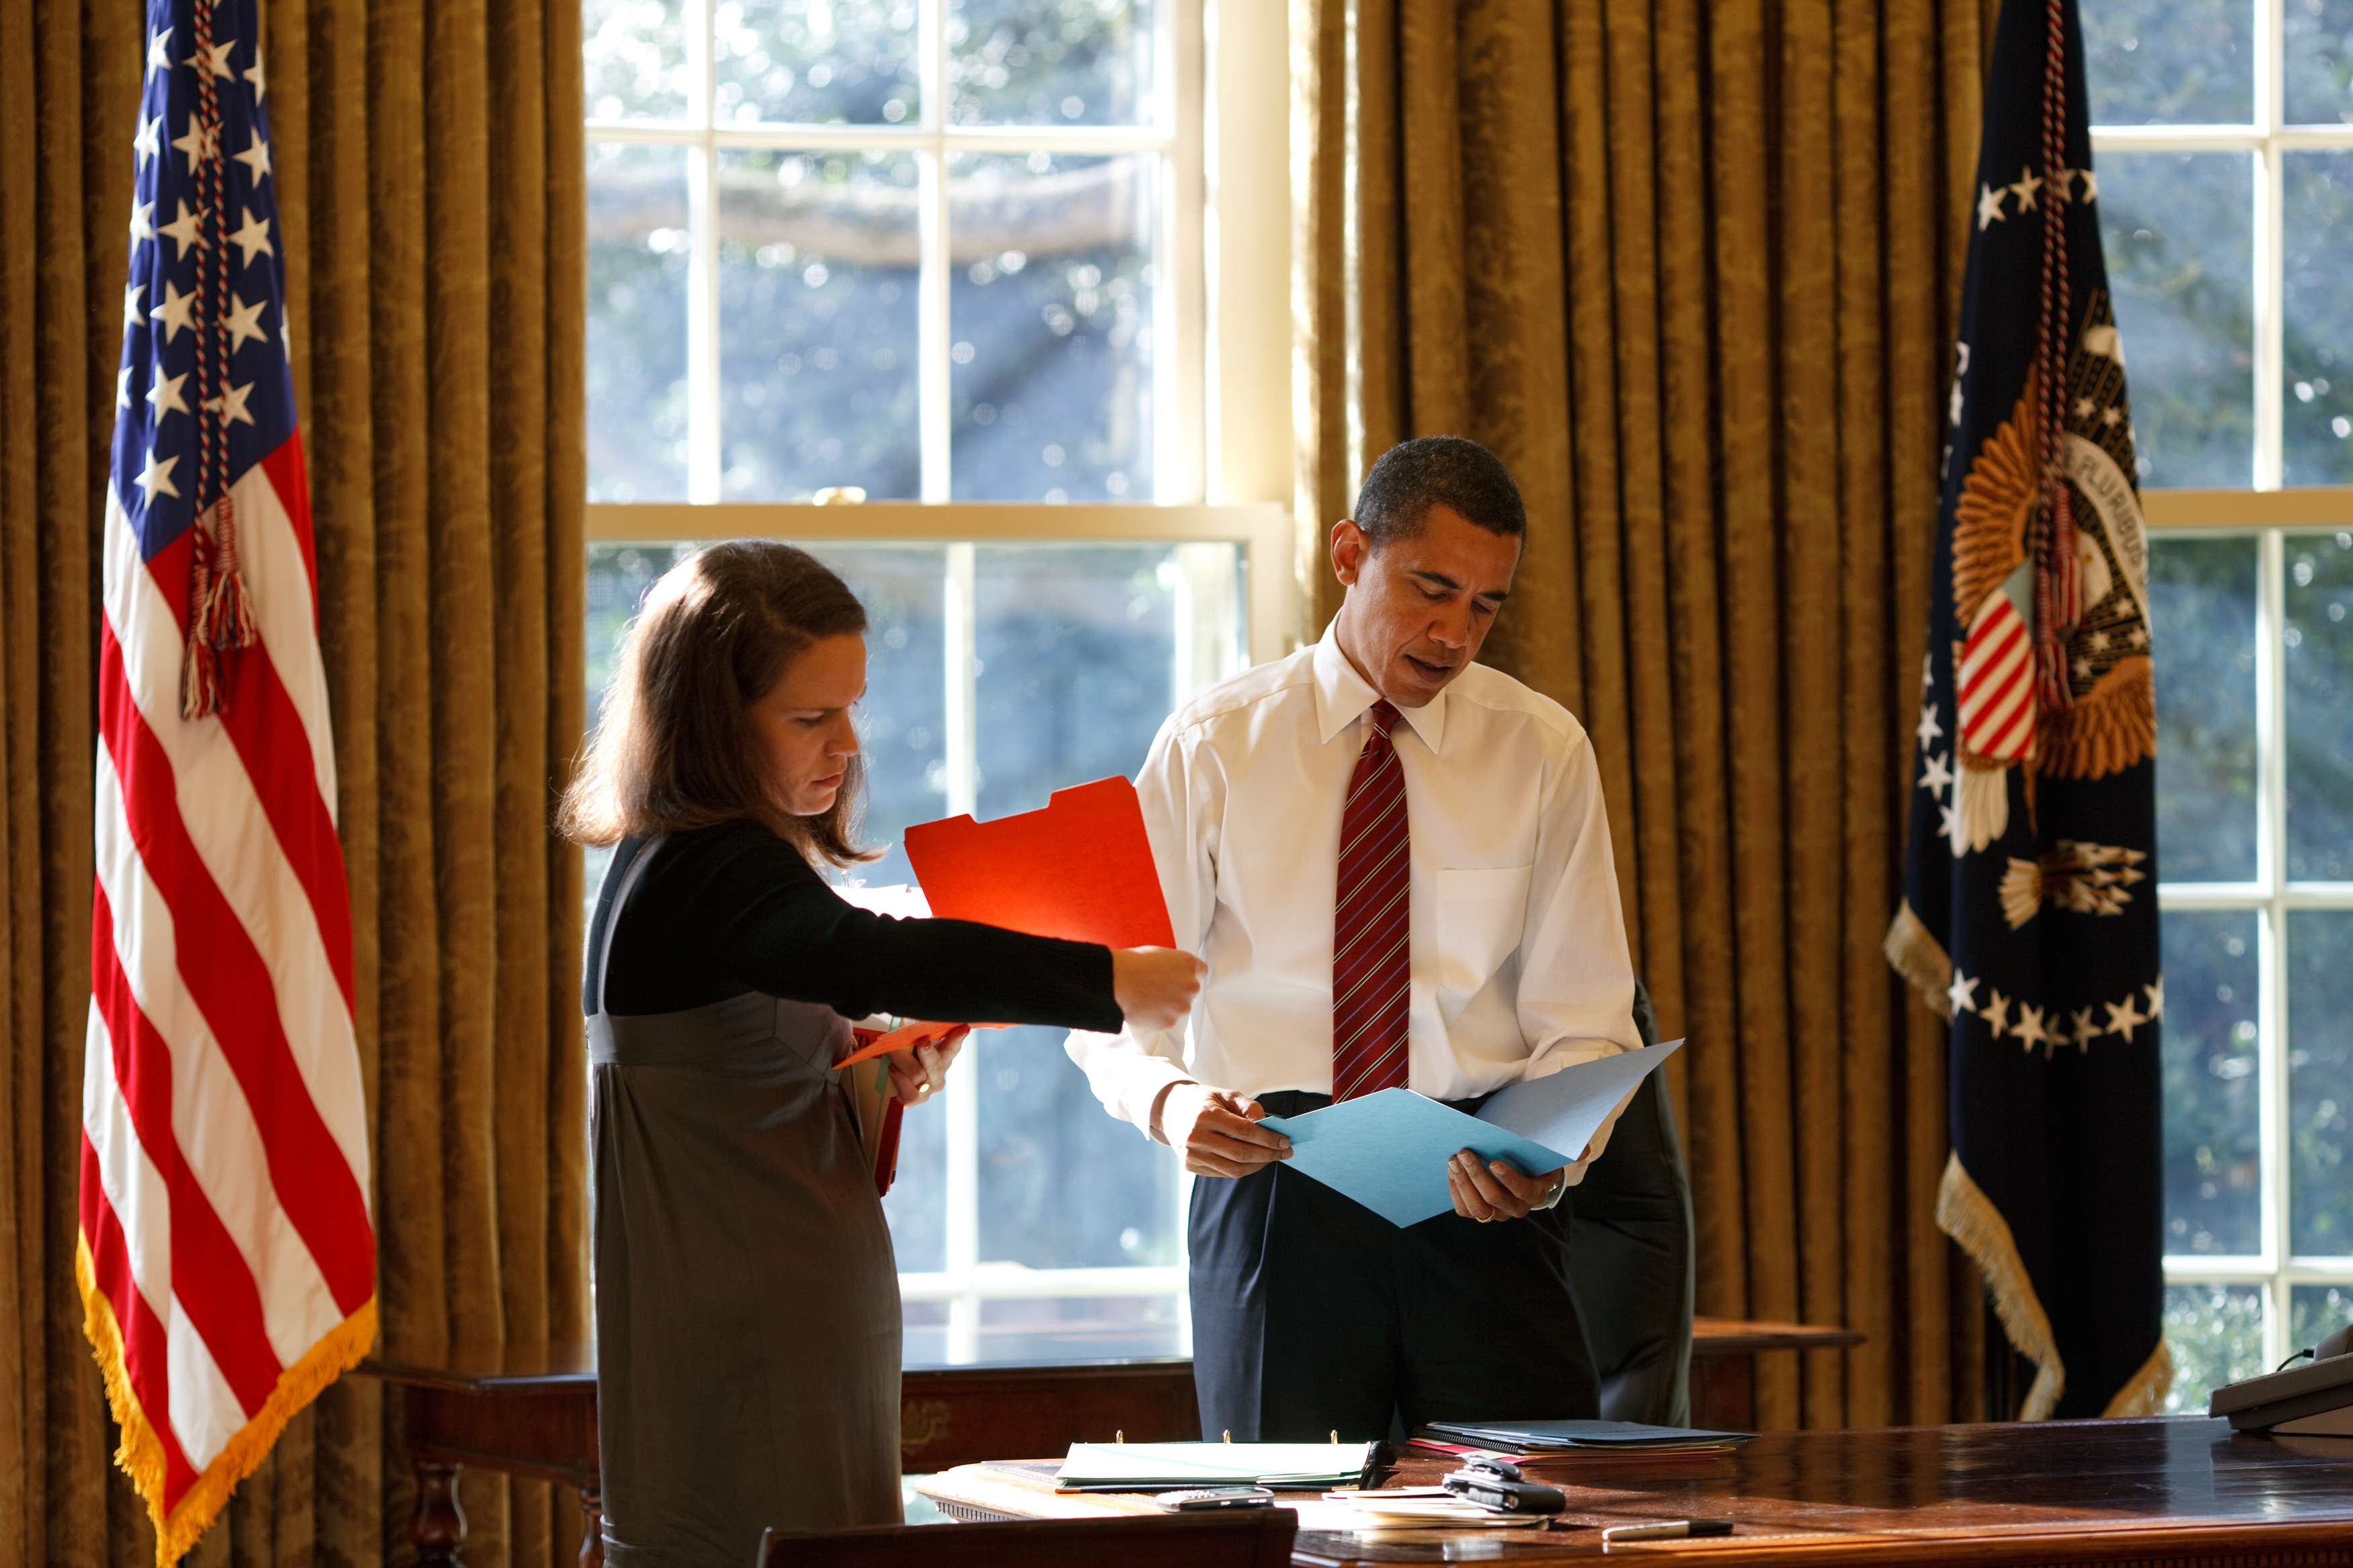 Obama Resolute Desk File Barack Obama And Katie Johnson In The Oval Office